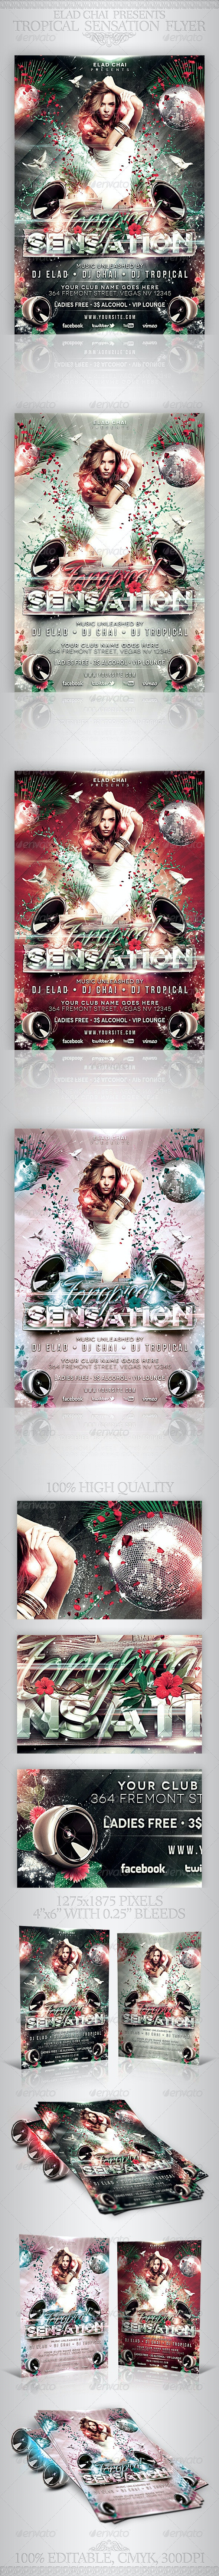 Tropical Sensation Party Flyer Template - Clubs & Parties Events